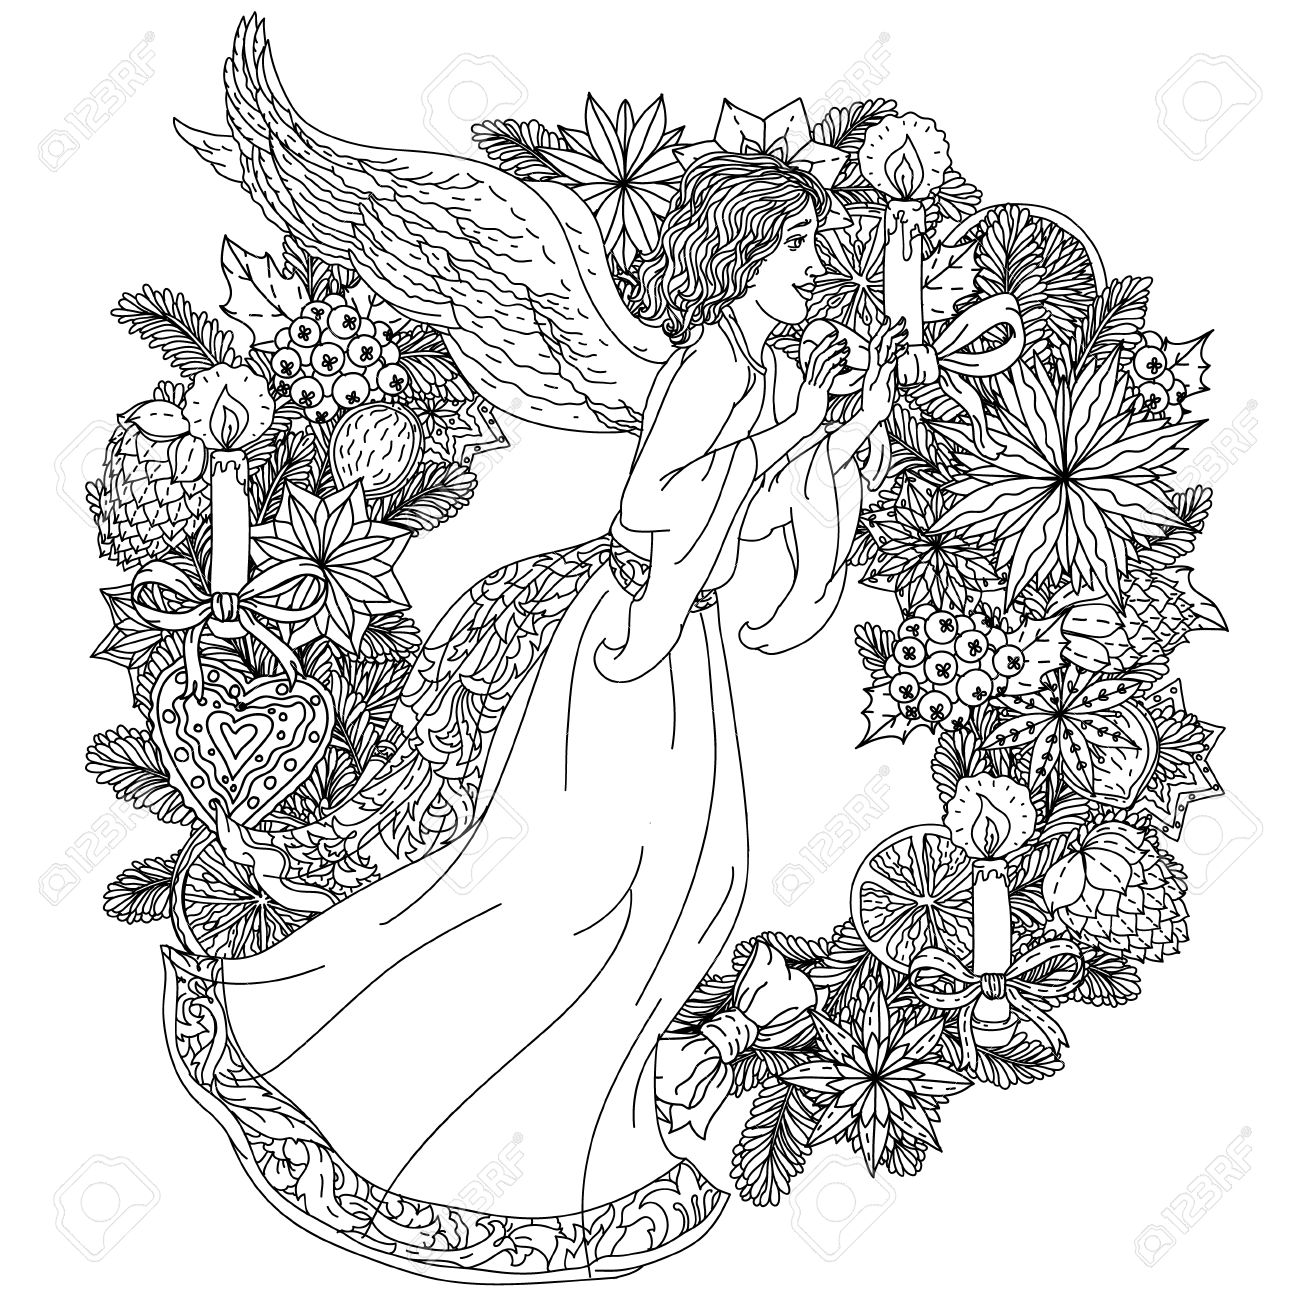 Angel On Christmas Wreath With Decorative Items Black And White Zentangle Patters The